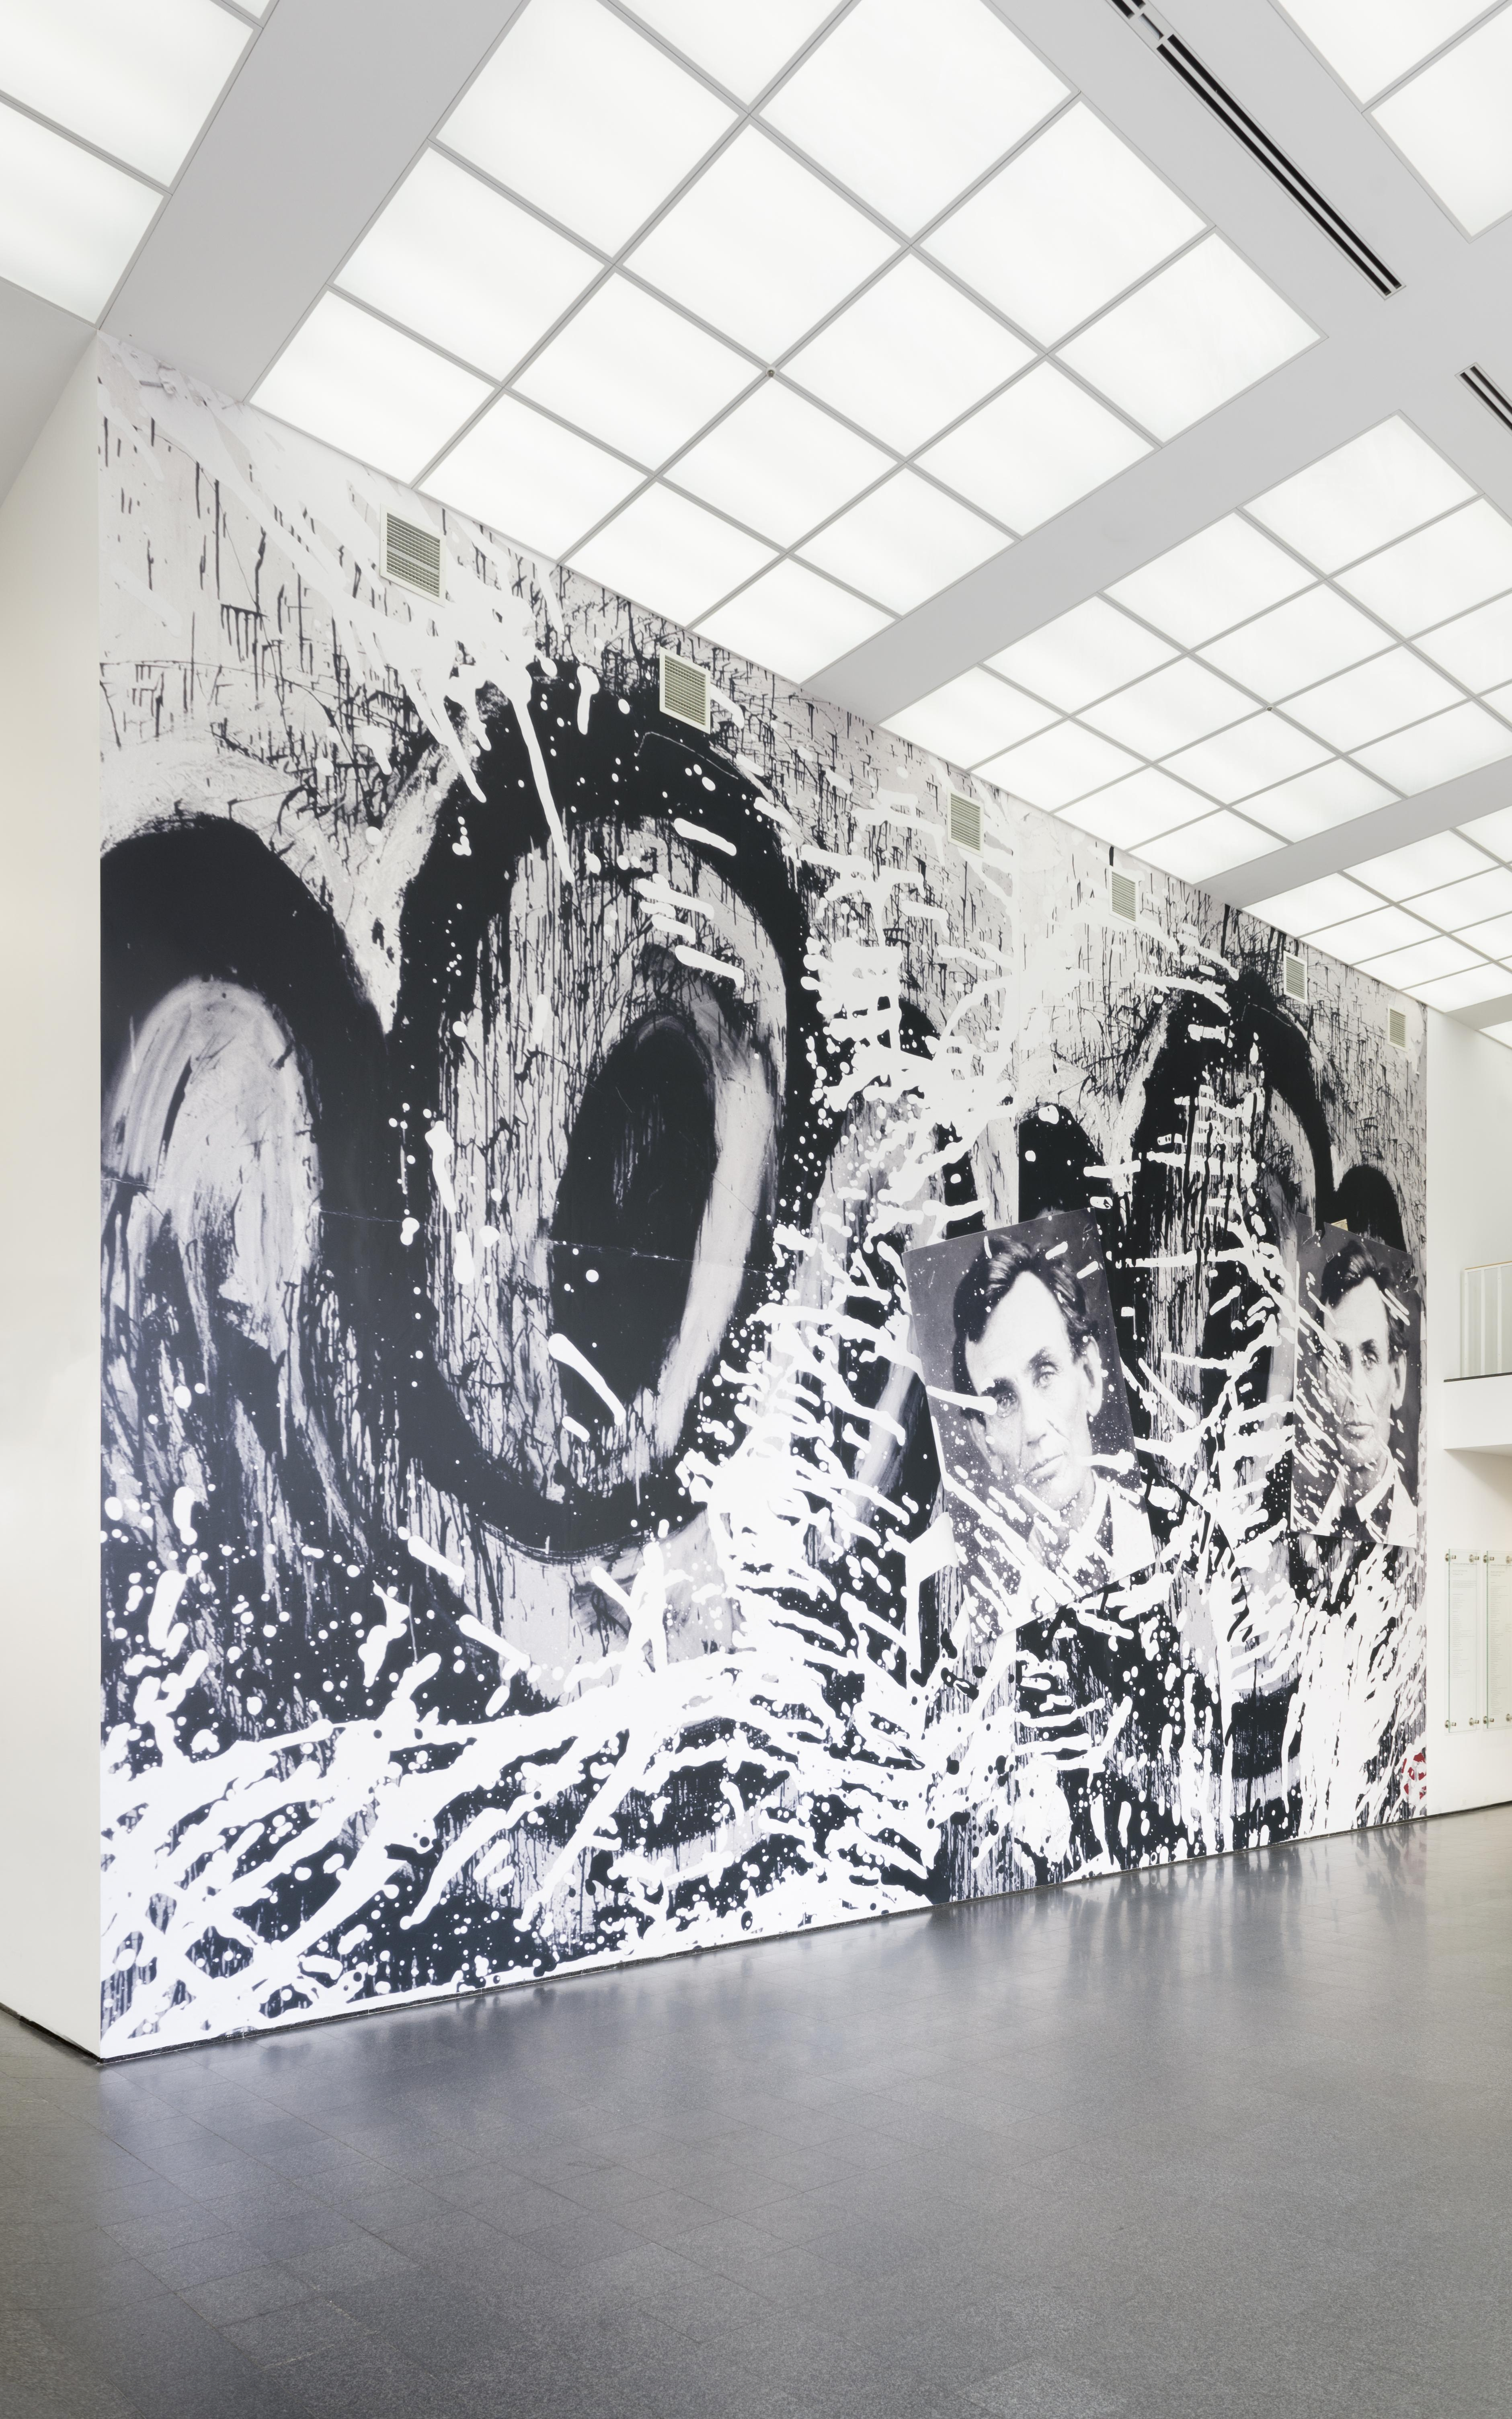 An image of a huge photographic wallpaper mural in the MCA's second floor lobby featuring cartoonish eyes, two photographs of Abraham Lincoln, and splatters of black and white paint.